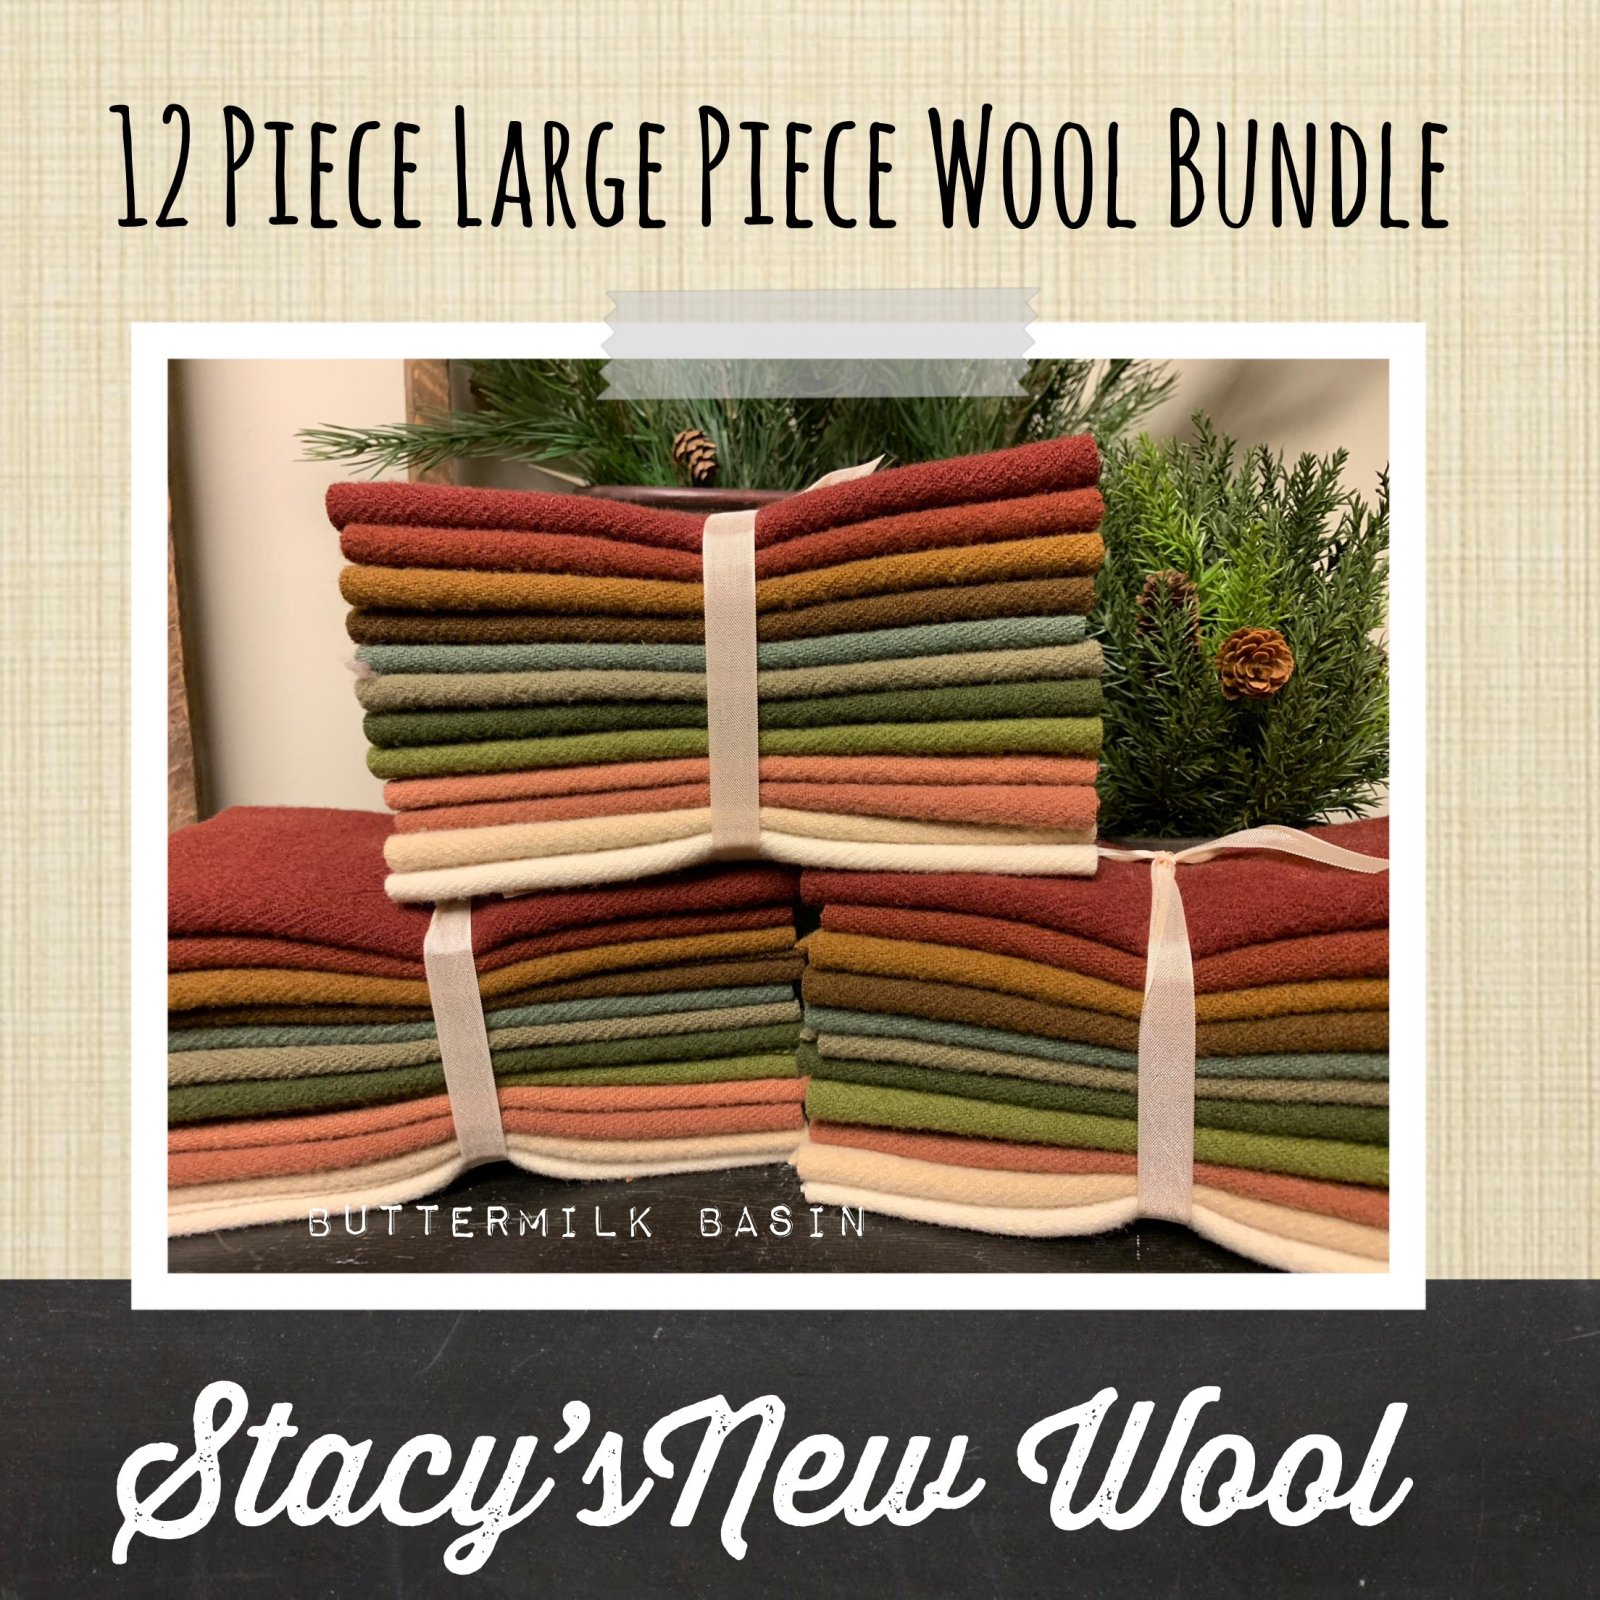 Stacy's New Wool * 12 Piece Bundle - 8 x 13 Pieces